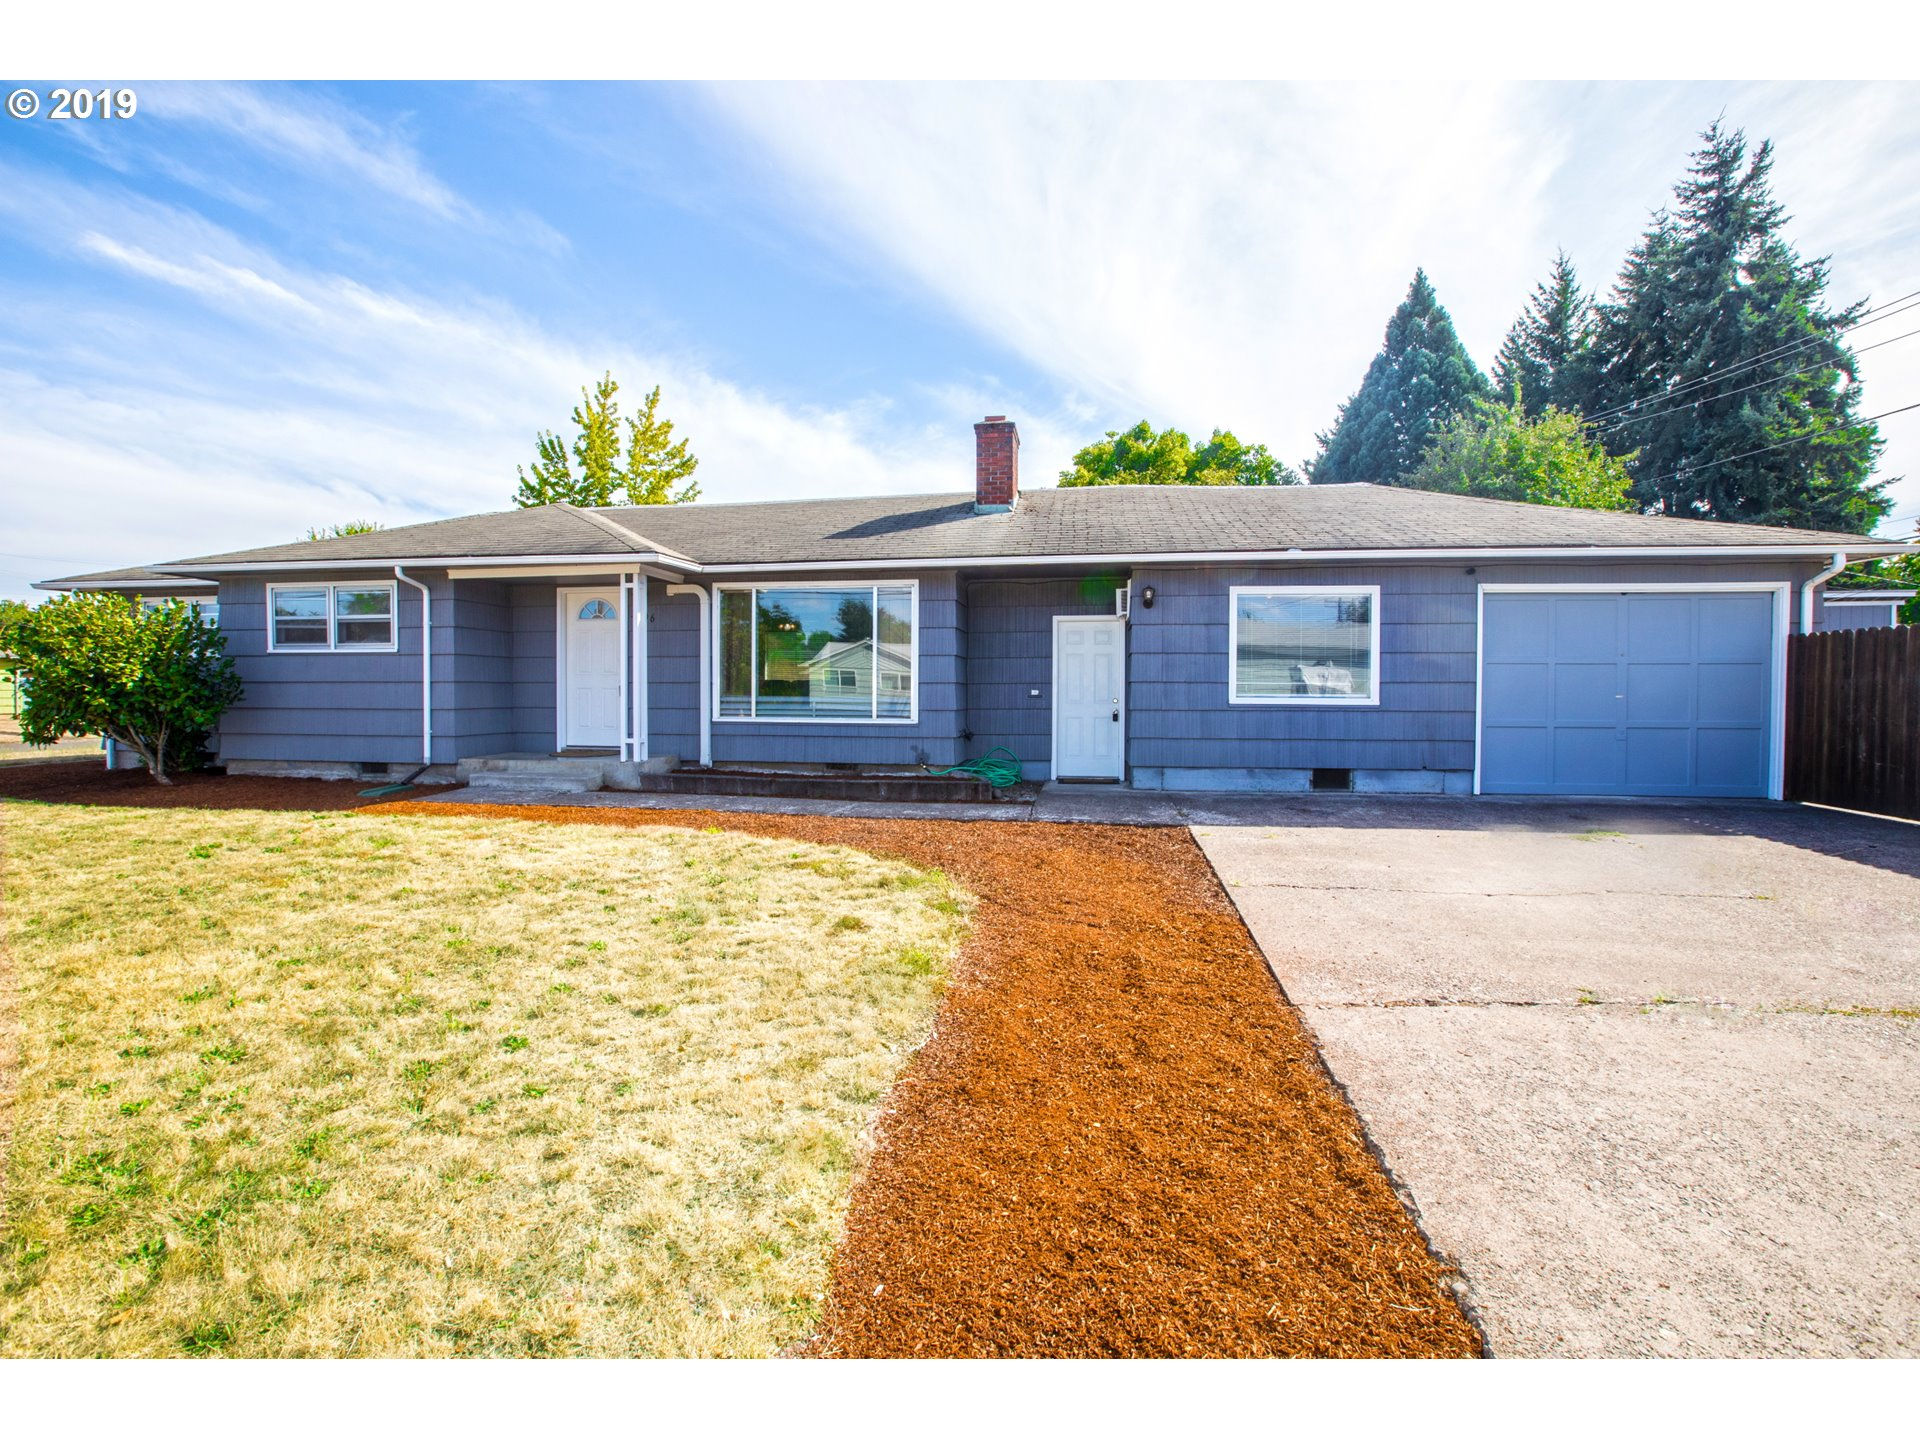 The Eugene Housing Market Demystified: Our 2019 Real Estate